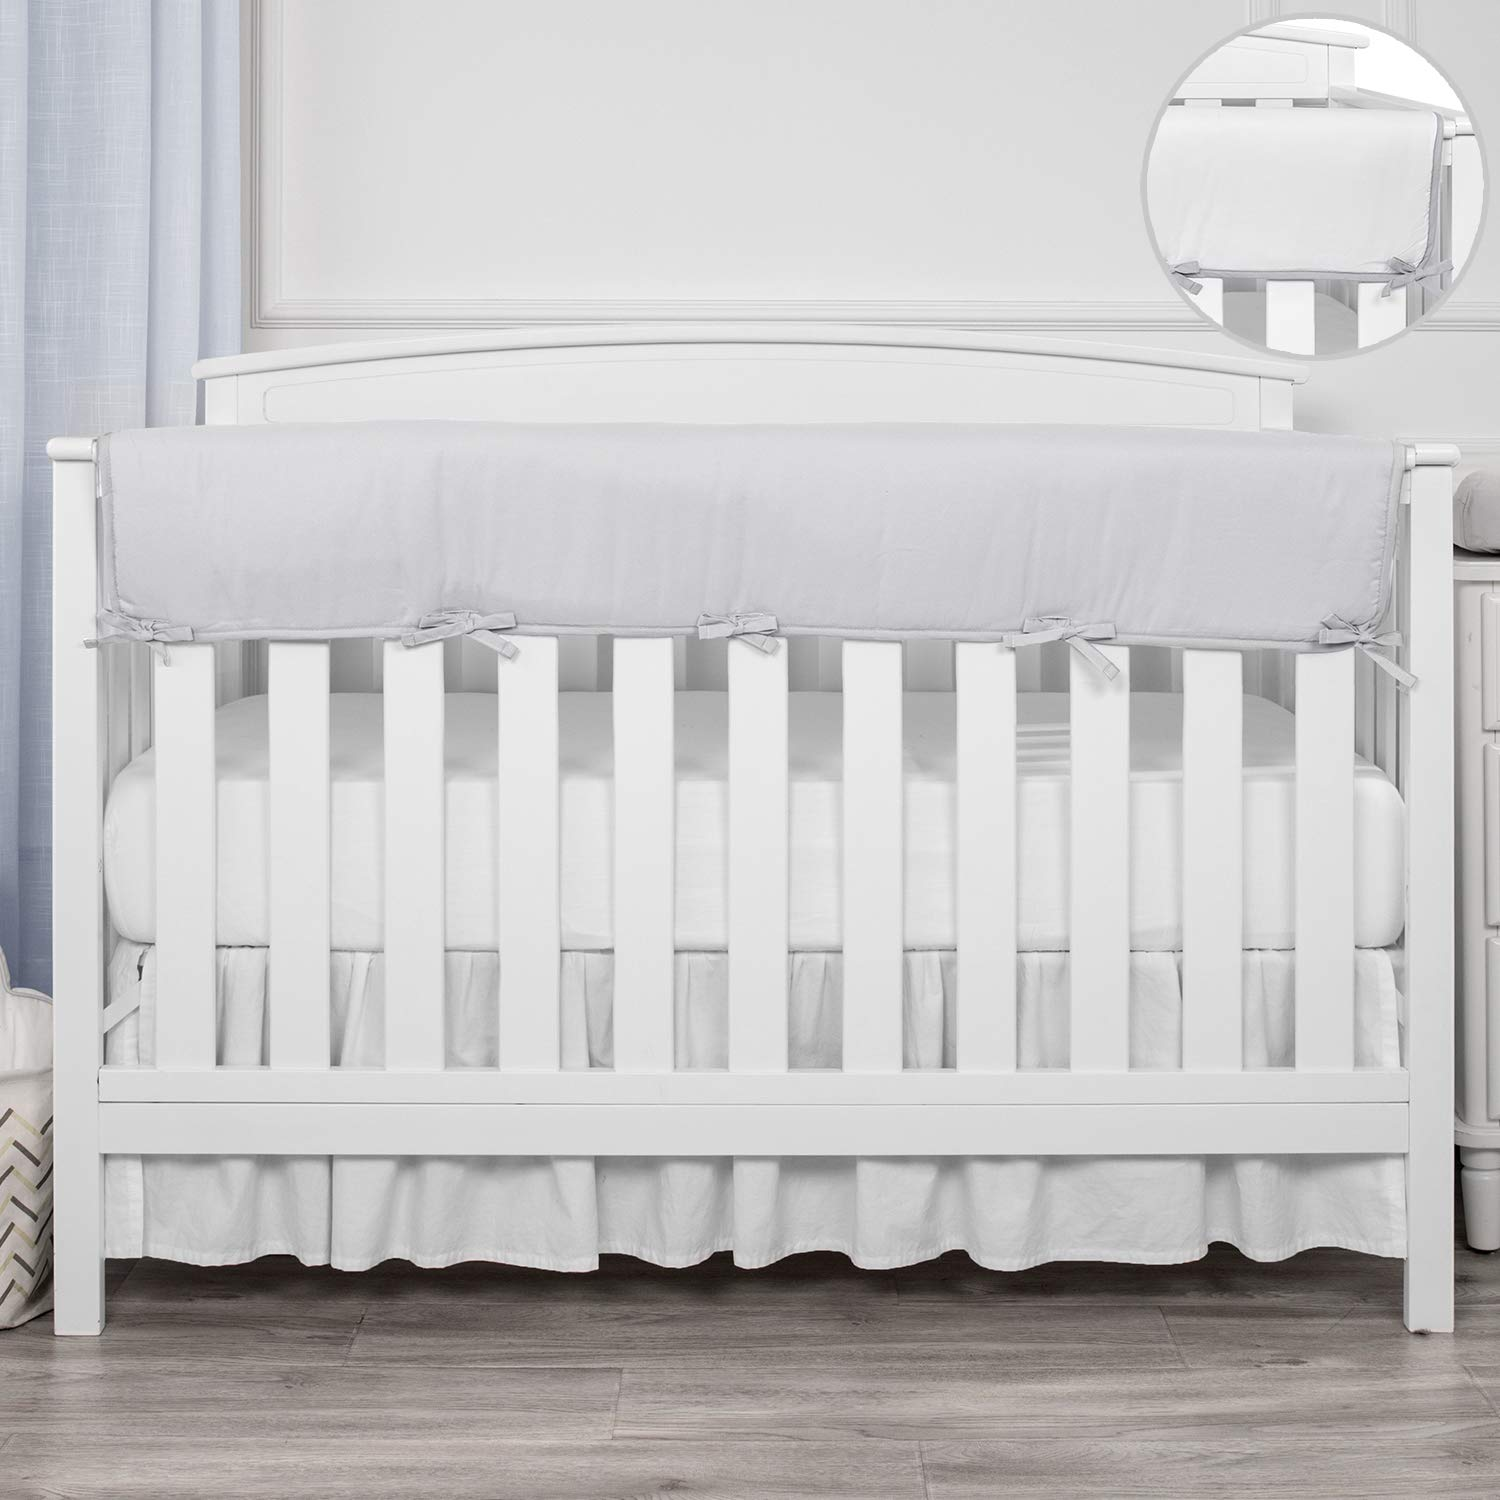 """TILLYOU 1-Pack Padded Baby Crib Rail Cover Protector Safe Teething Guard Wrap for Long Front Crib Rails(Measuring Up to 18"""" Around), 100% Silky Soft Microfiber Polyester, Reversible, Pale Gray/White"""